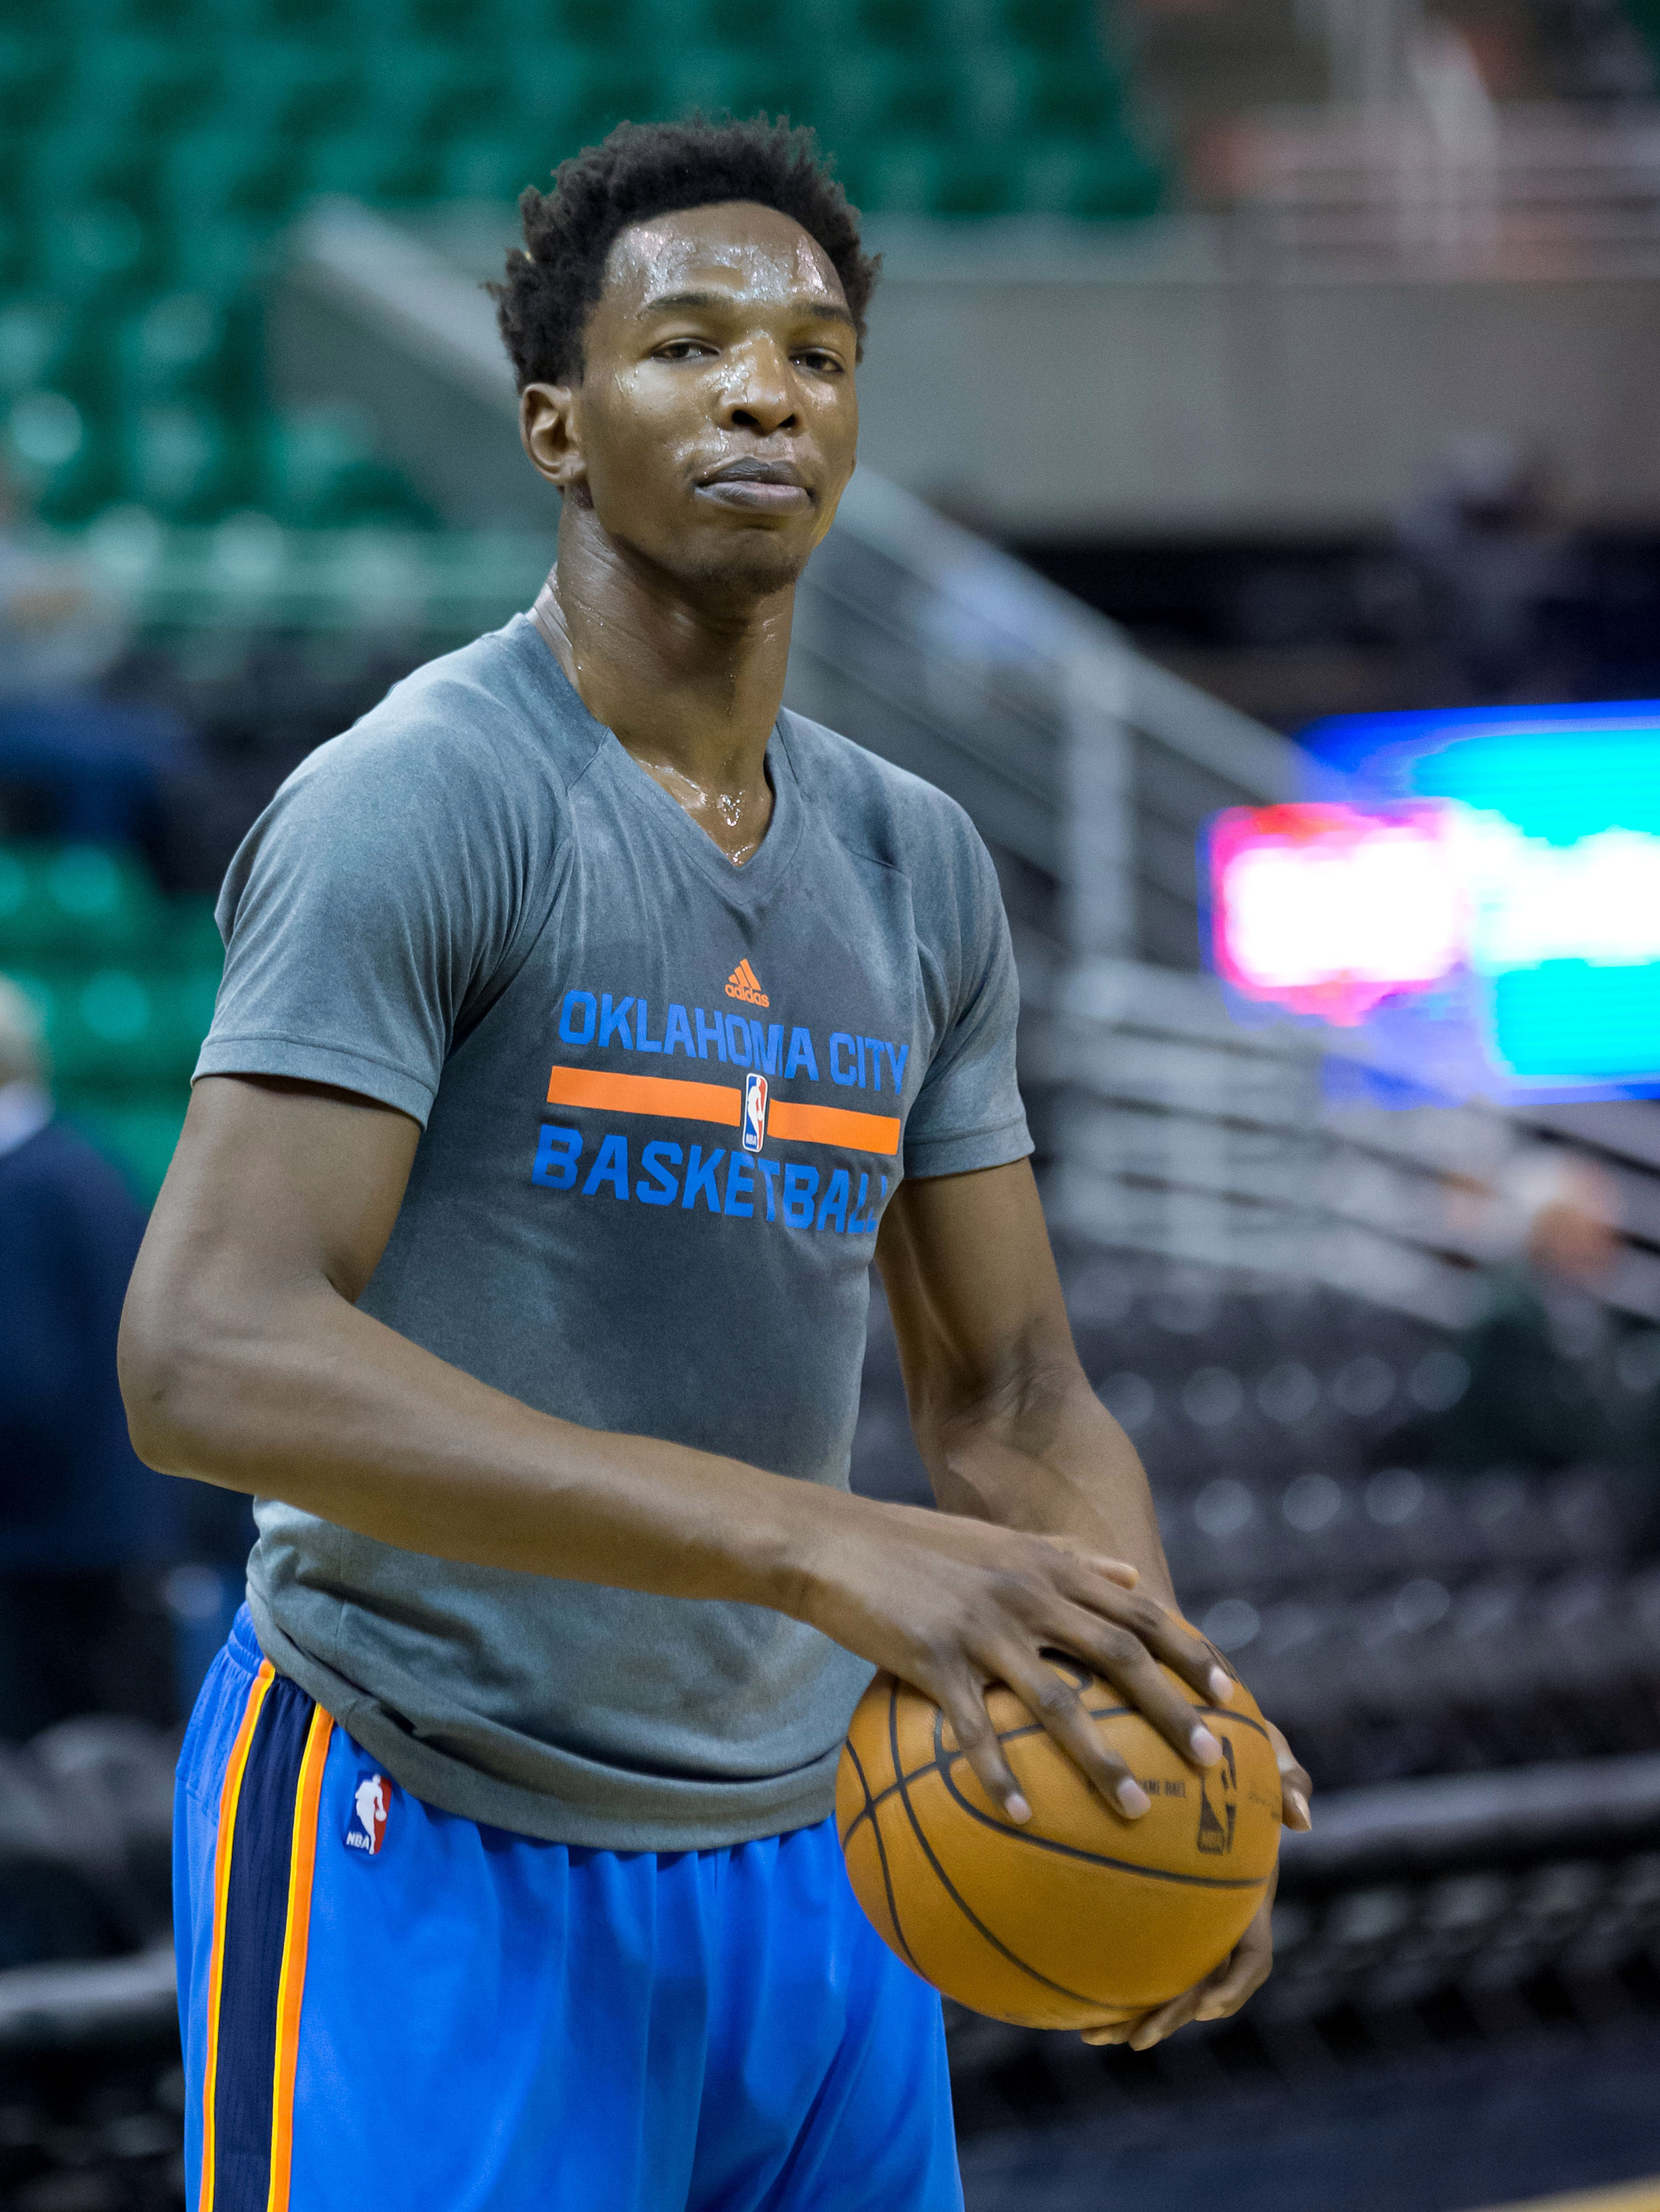 Hasheem Thabeet traded to 76ers, but will be waived, per report